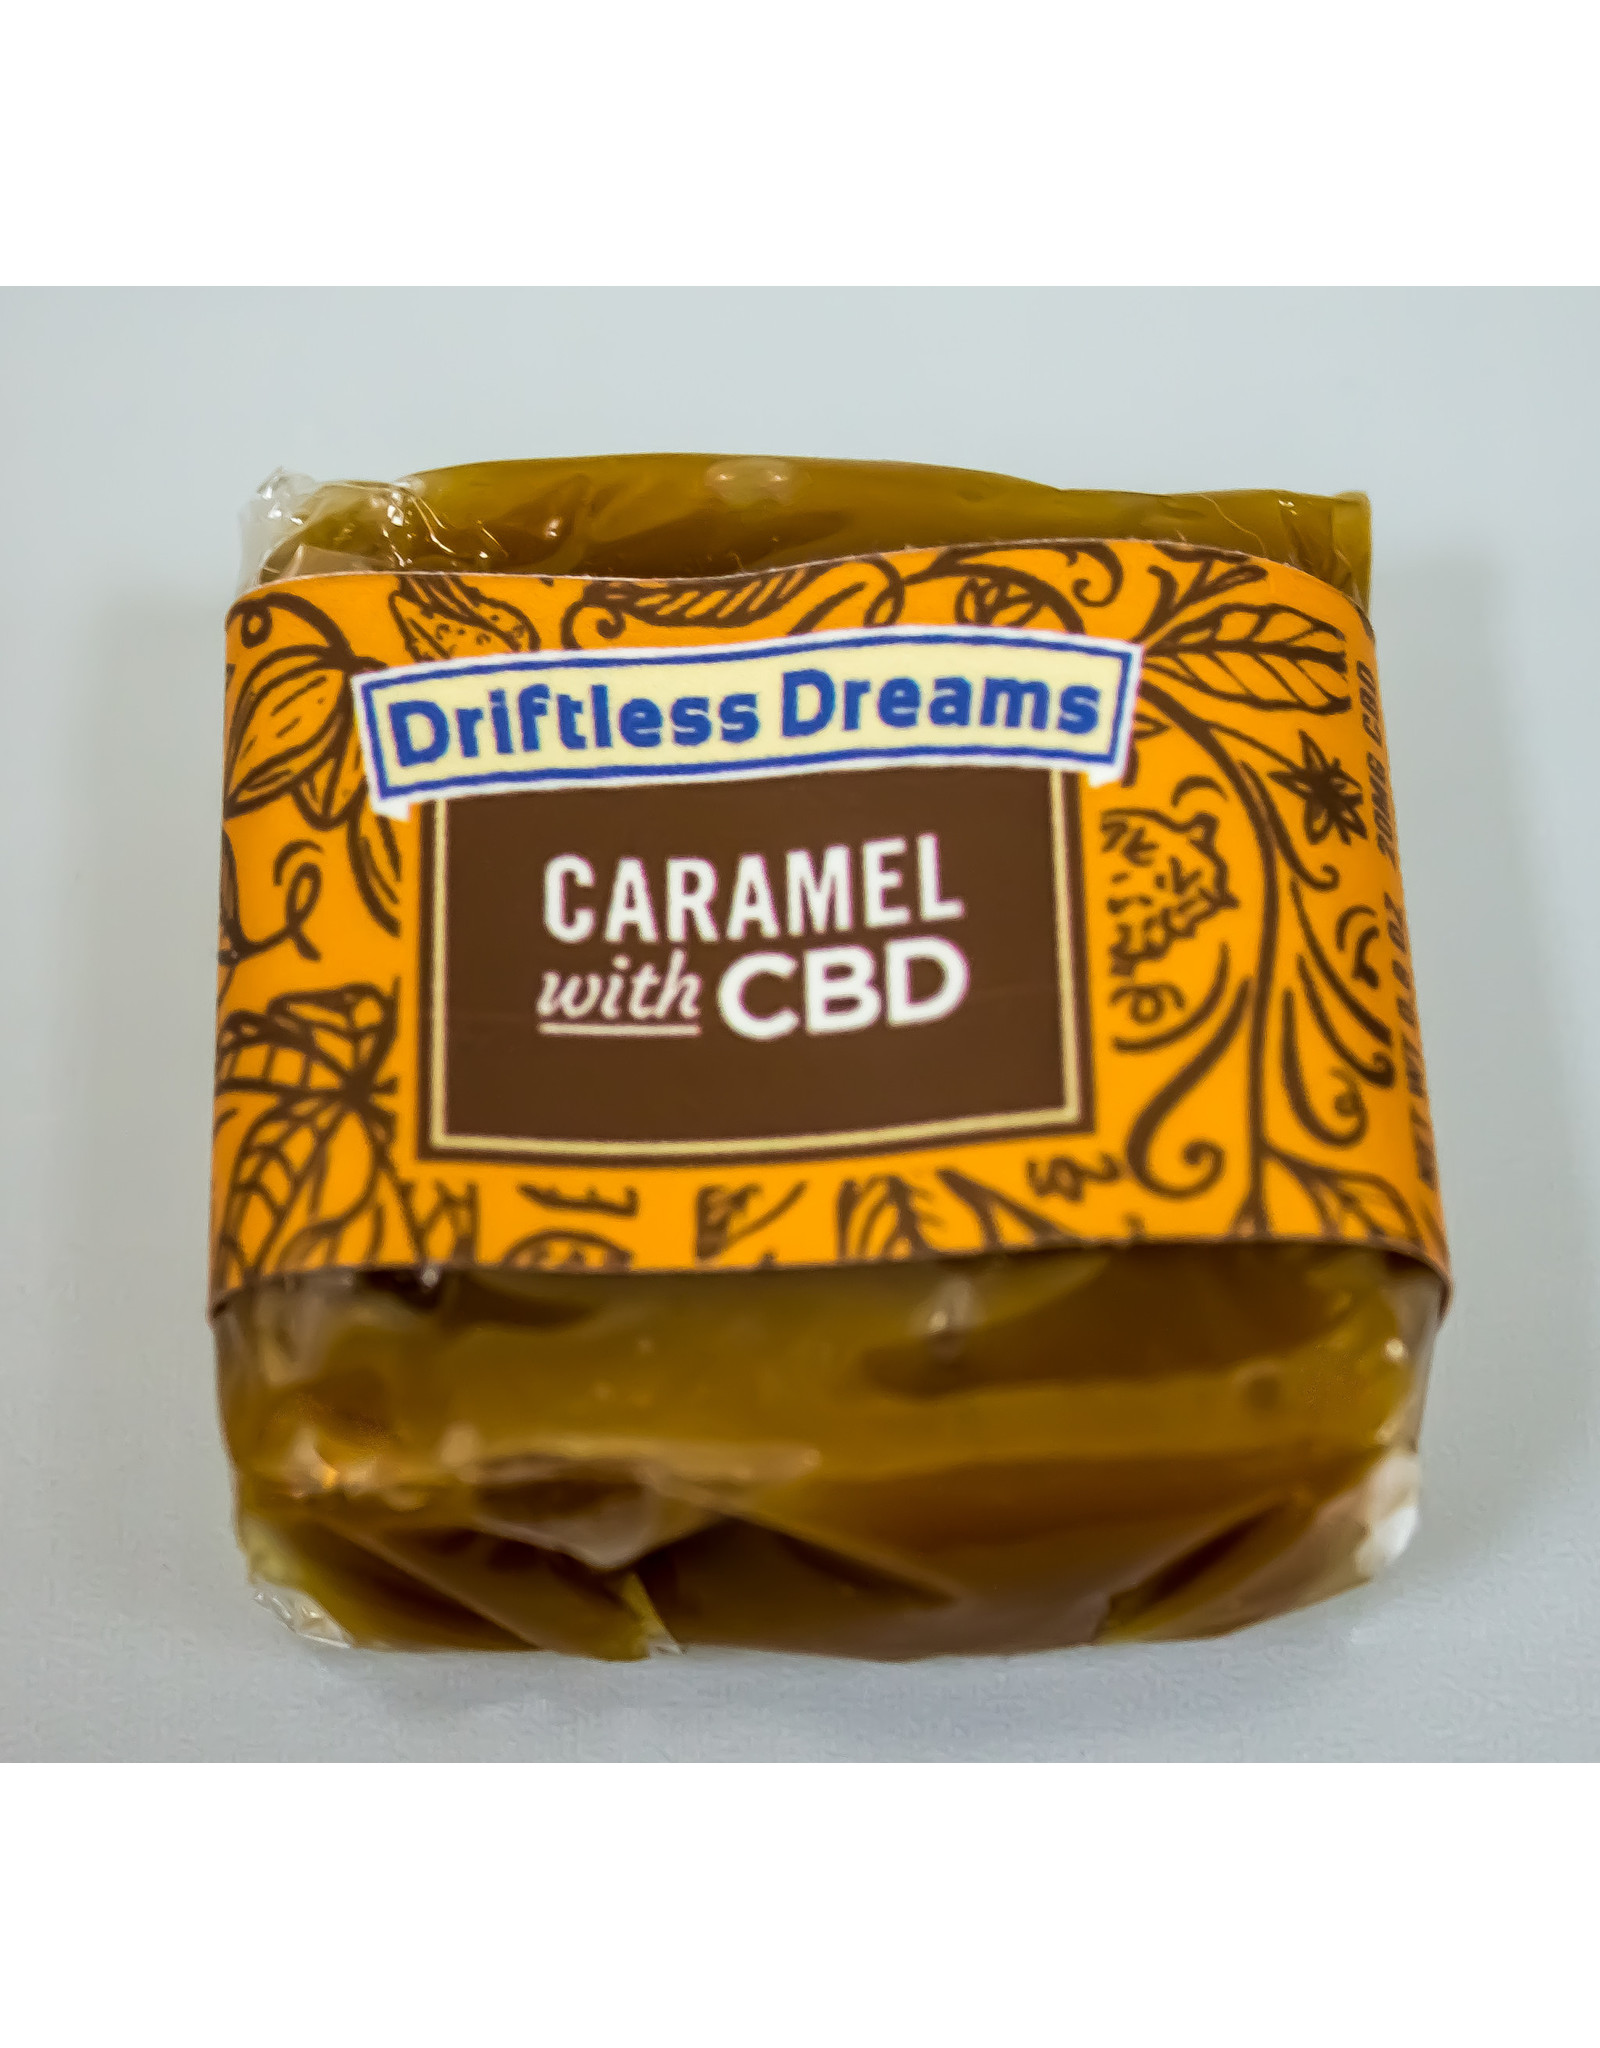 Driftless Dreams Driftless Dreams 20mg CBD Caramel